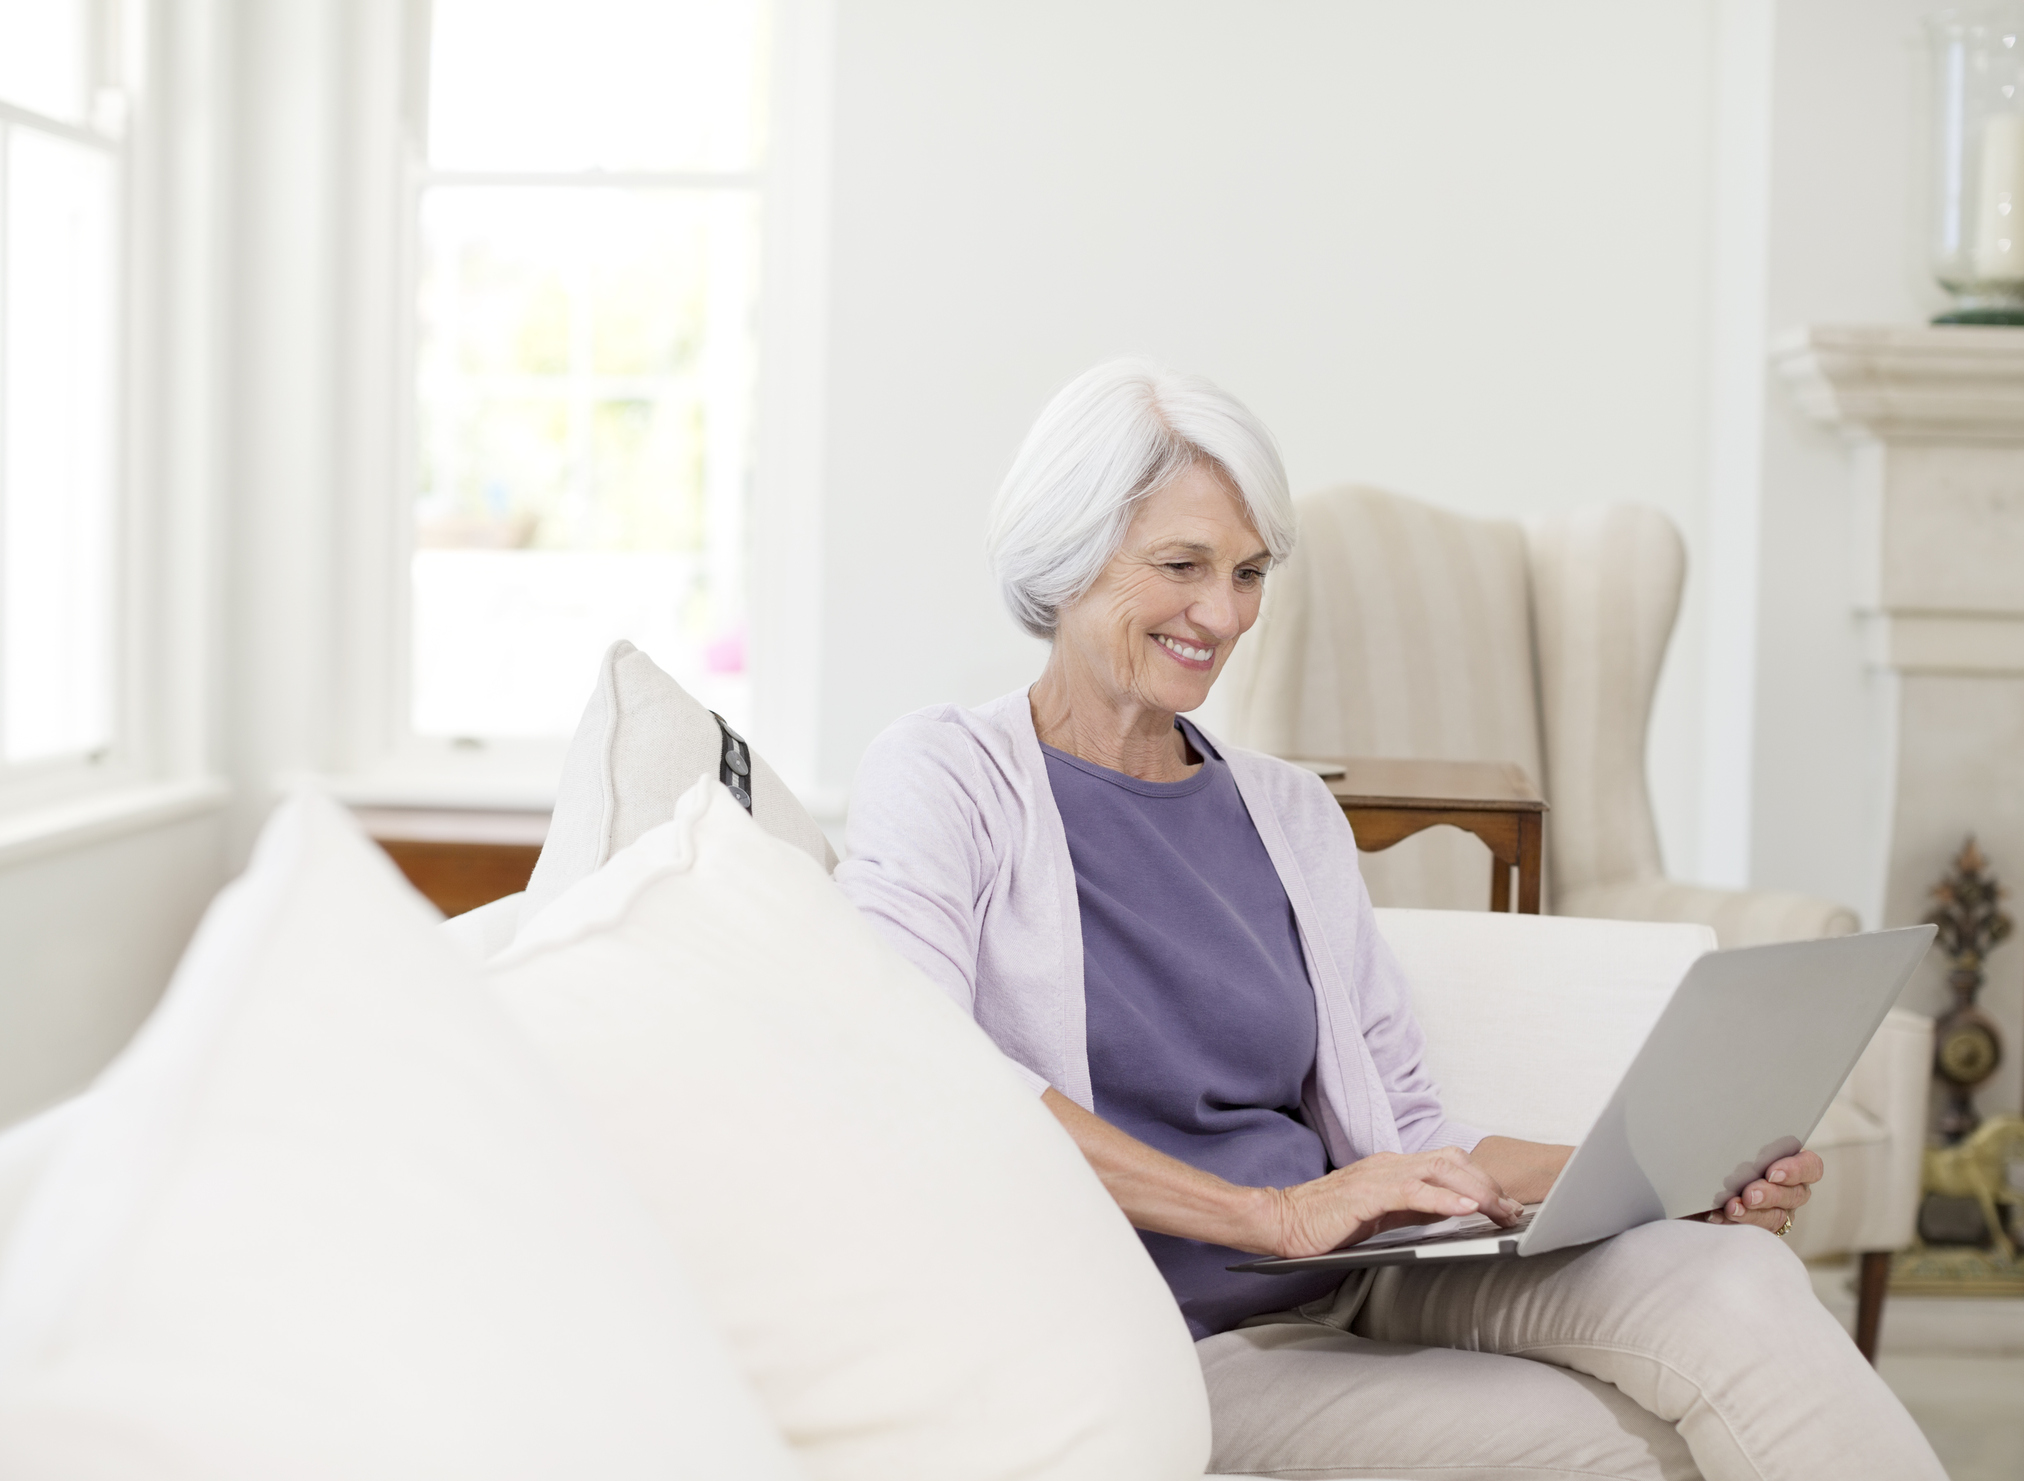 Senior woman using laptop on sofa in living room